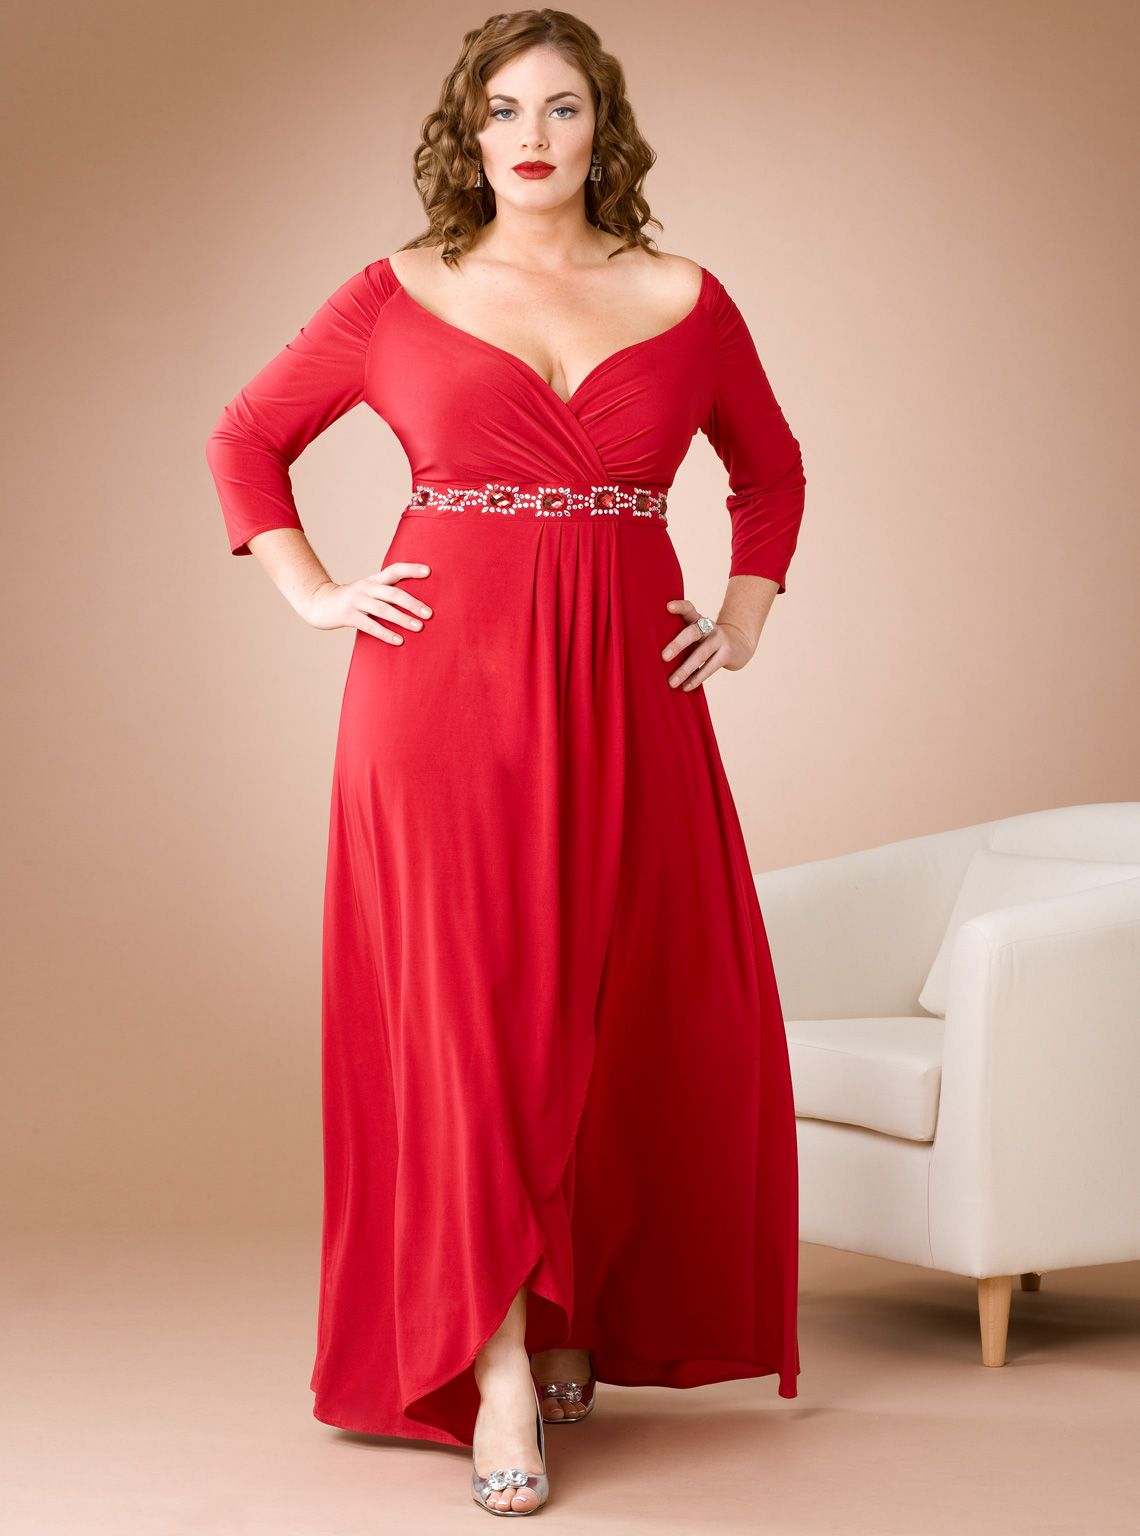 Image detail for -plus size prom dresses Plus Size Dresses Evening ...